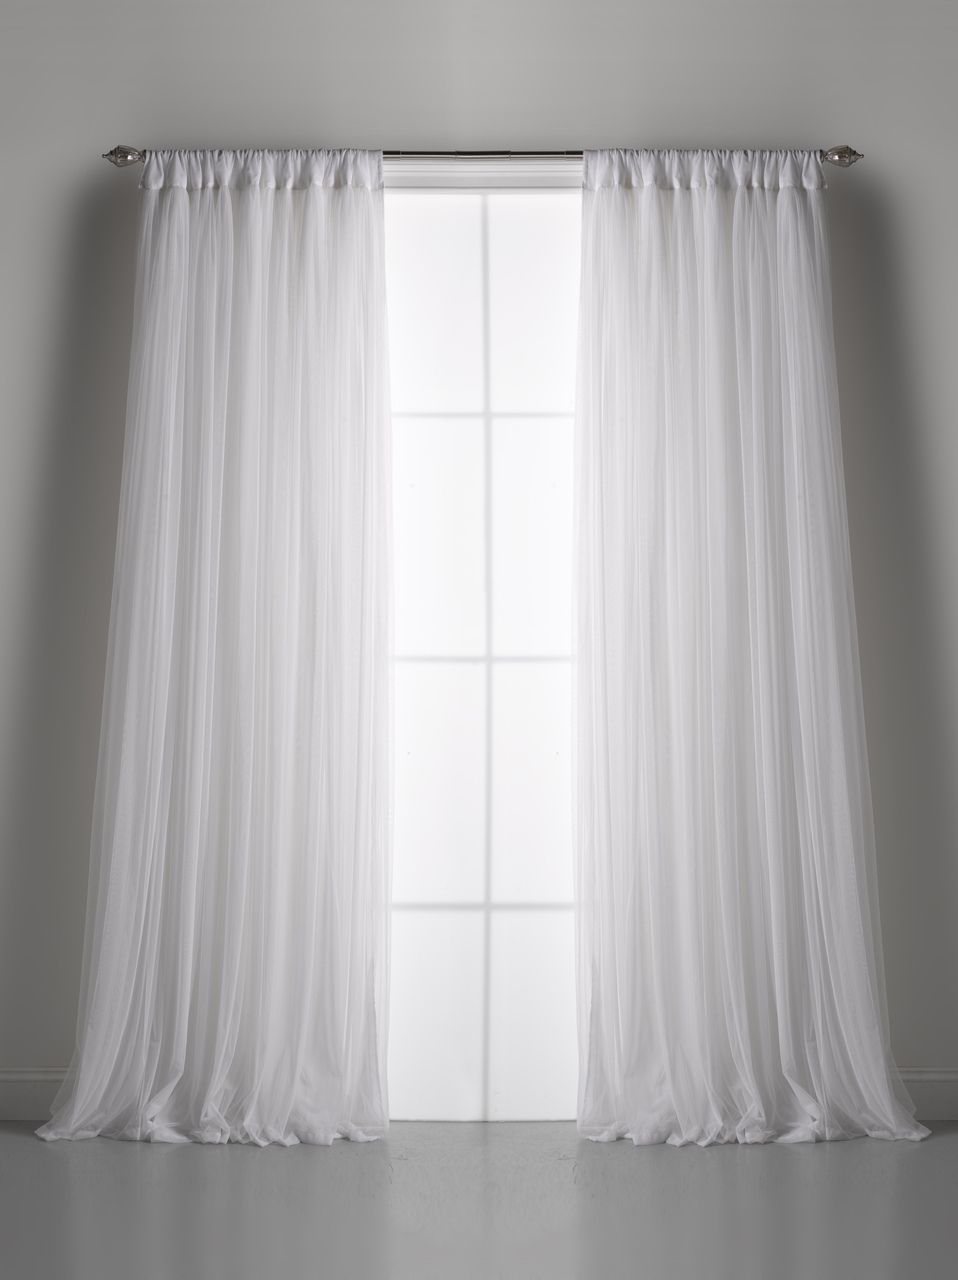 Window Curtains: Couture Dreams Whisper Window Curtain